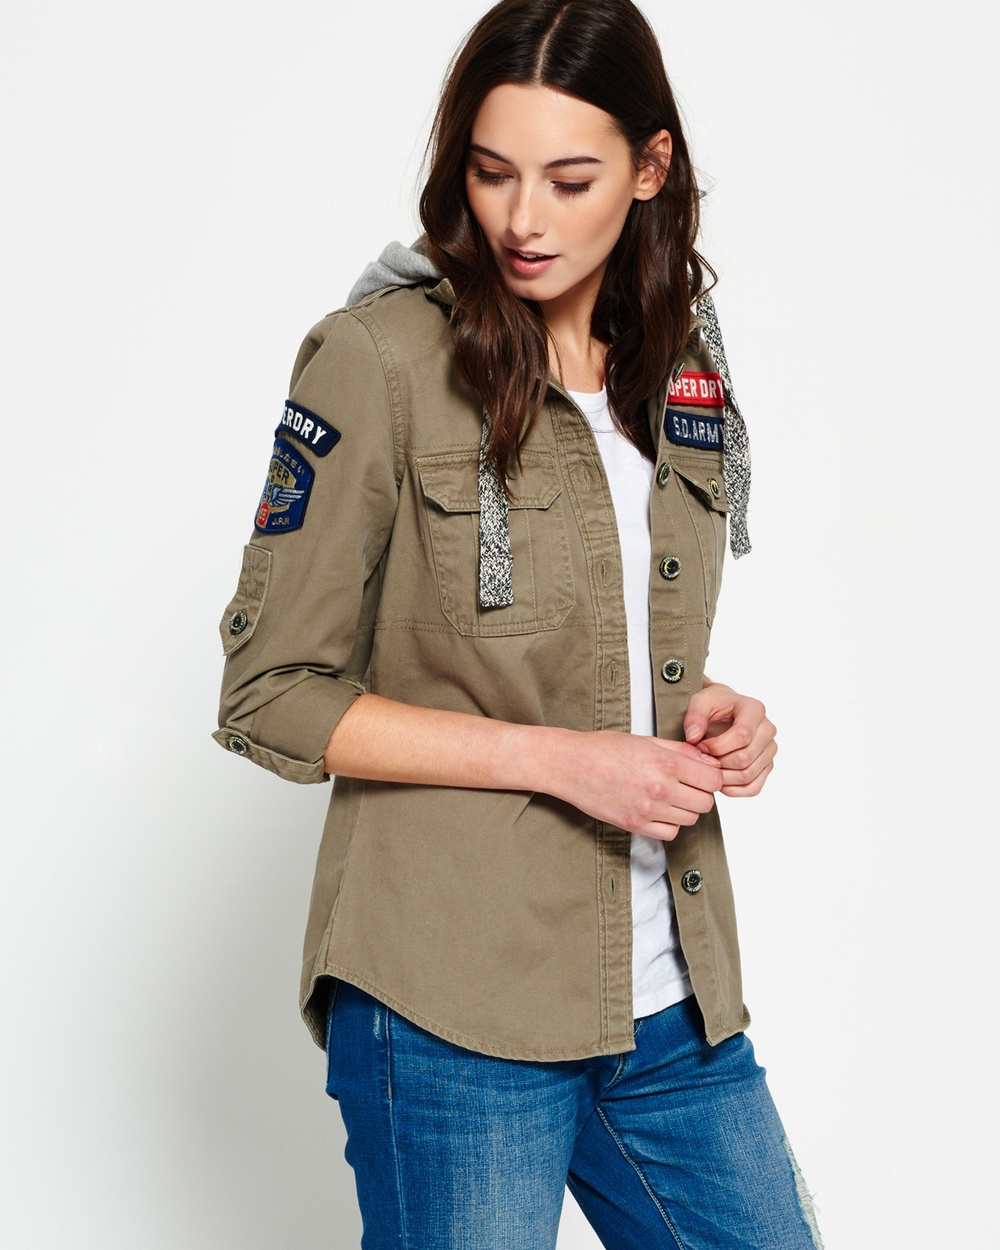 Superdry Washed Twill Military Shirt Tops ARMY GREEN Washed Twill Military Shirt